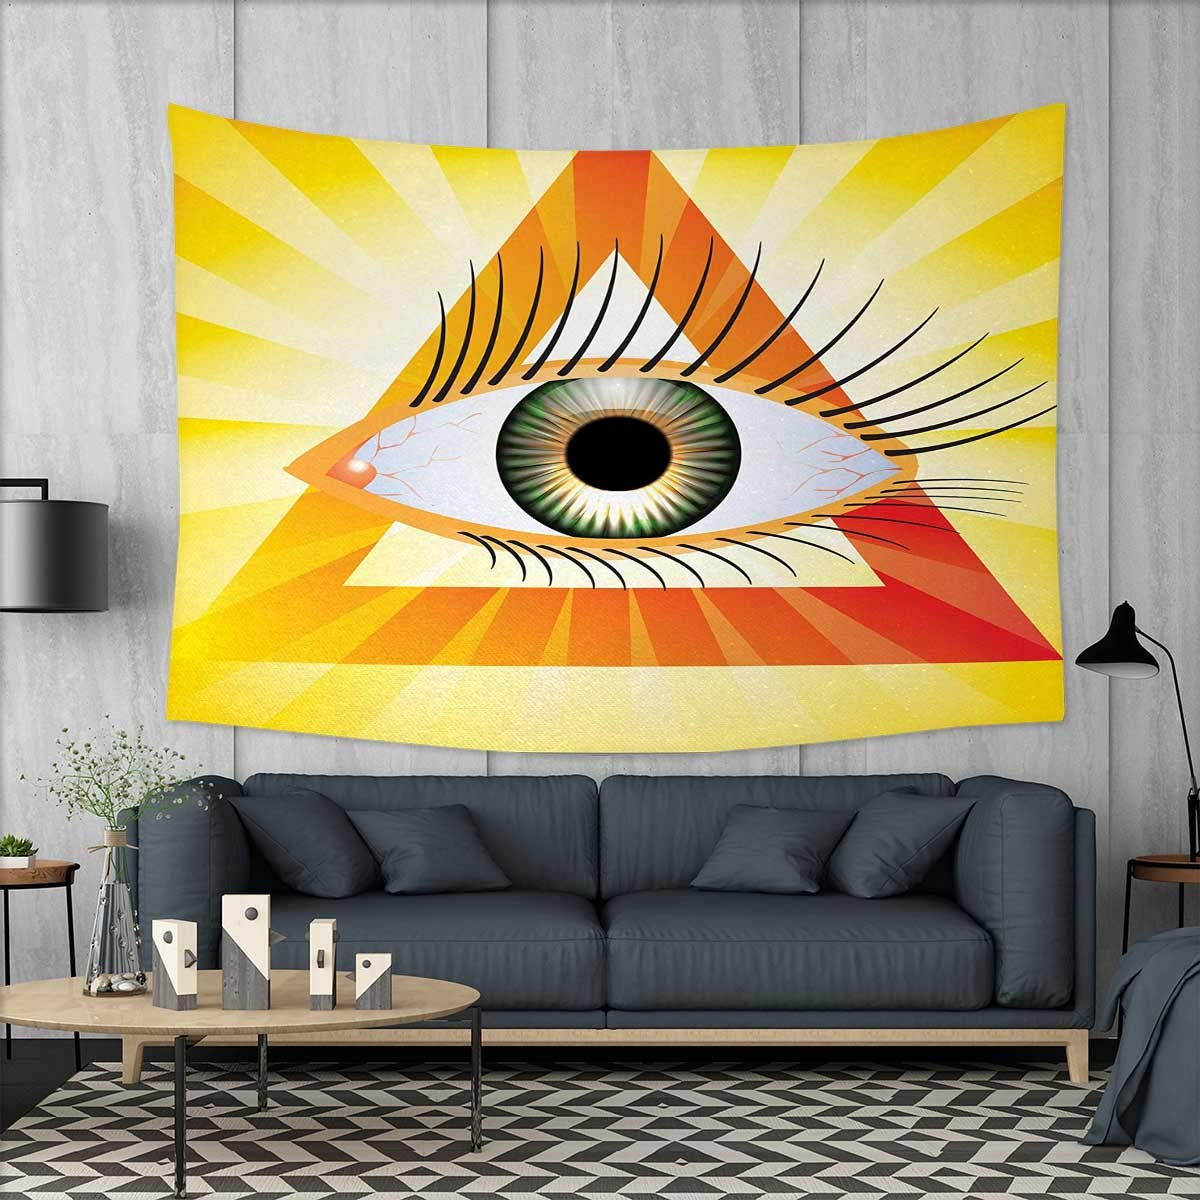 Amazon.com: Eye Home Decorations for Living Room Bedroom Realistic ...